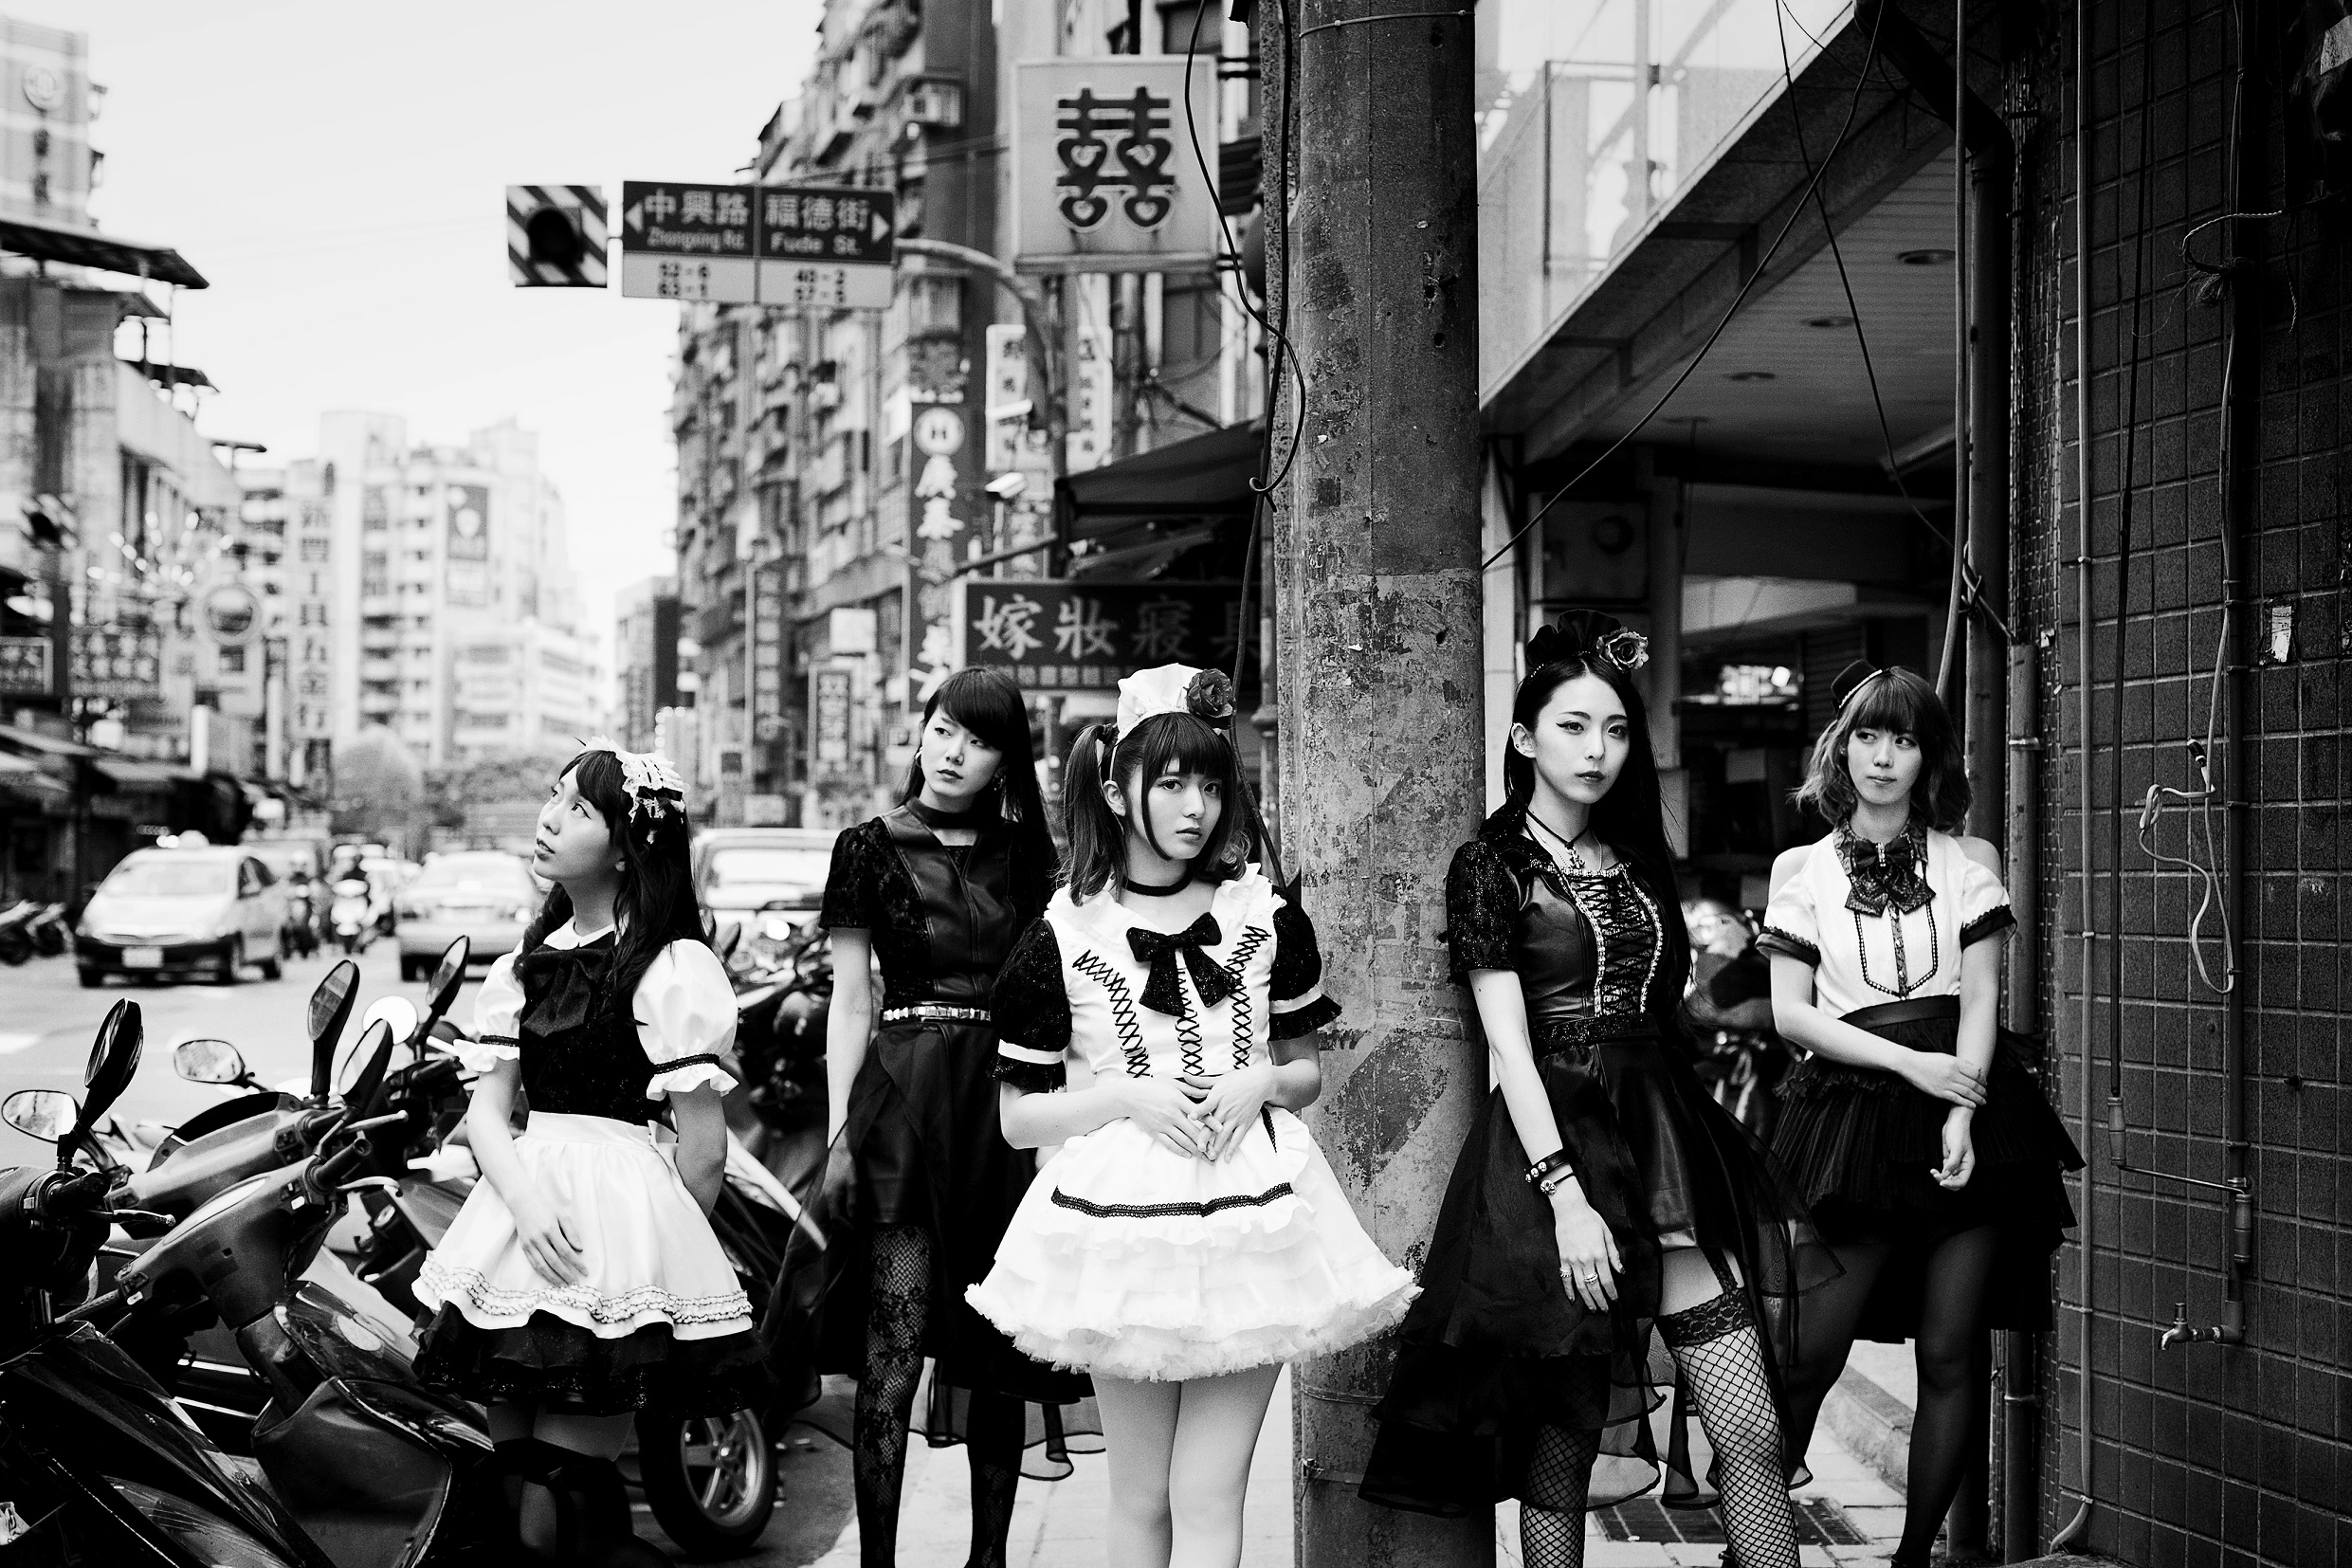 BAND-MAID's new song